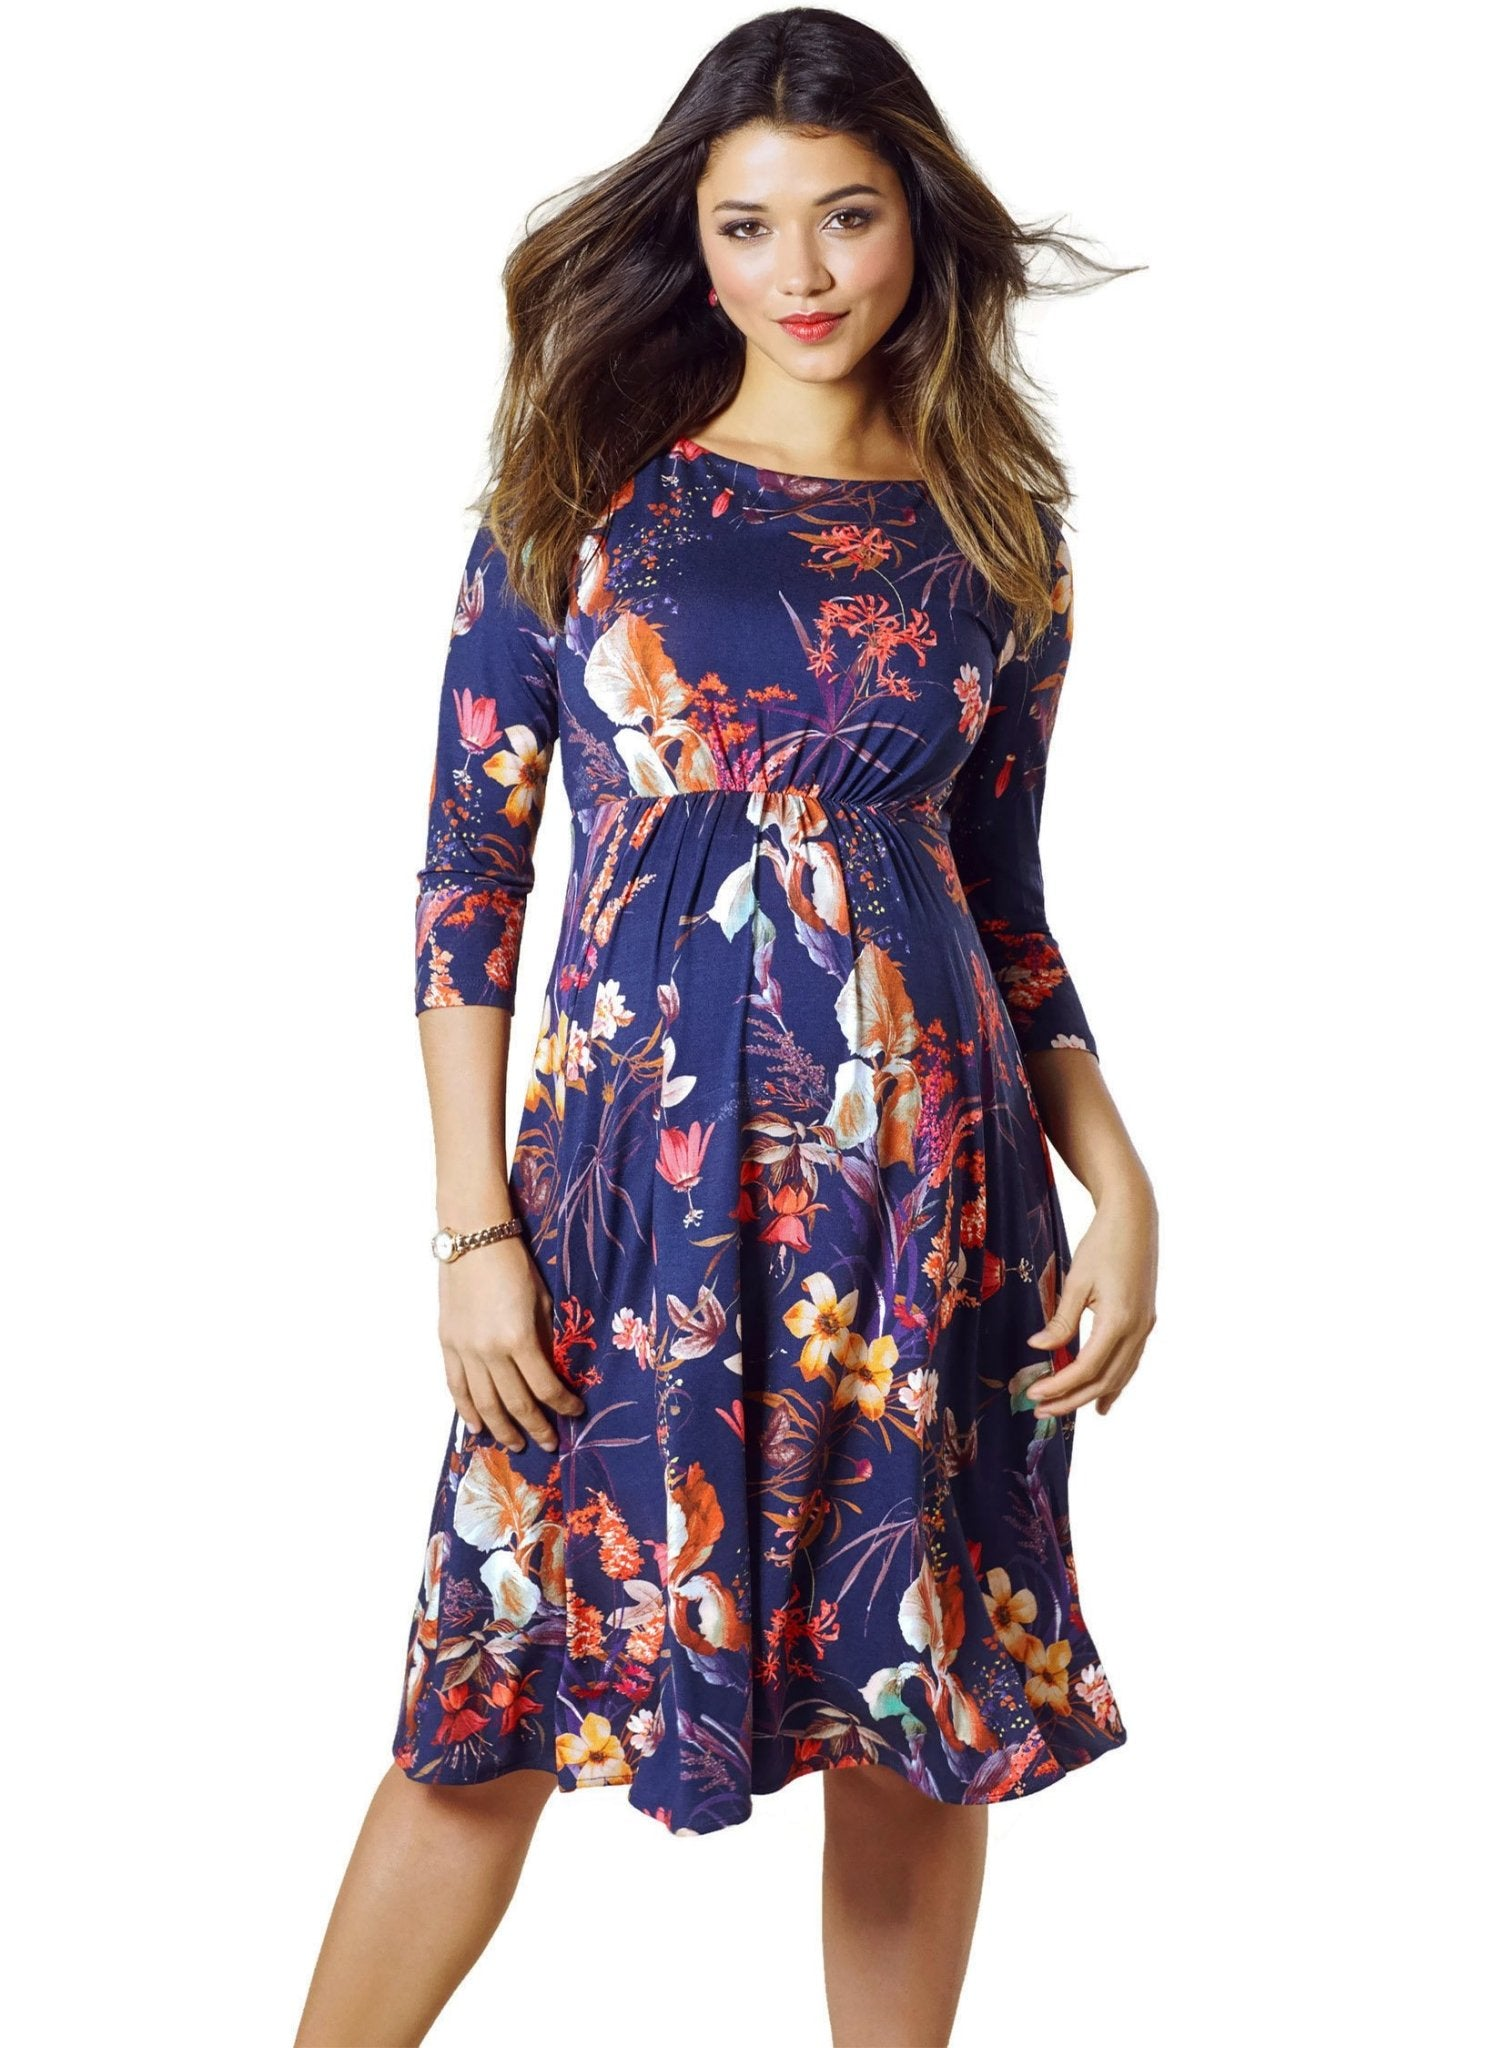 Cathy Maternity Dress - Oriental Bloom - Mums and Bumps